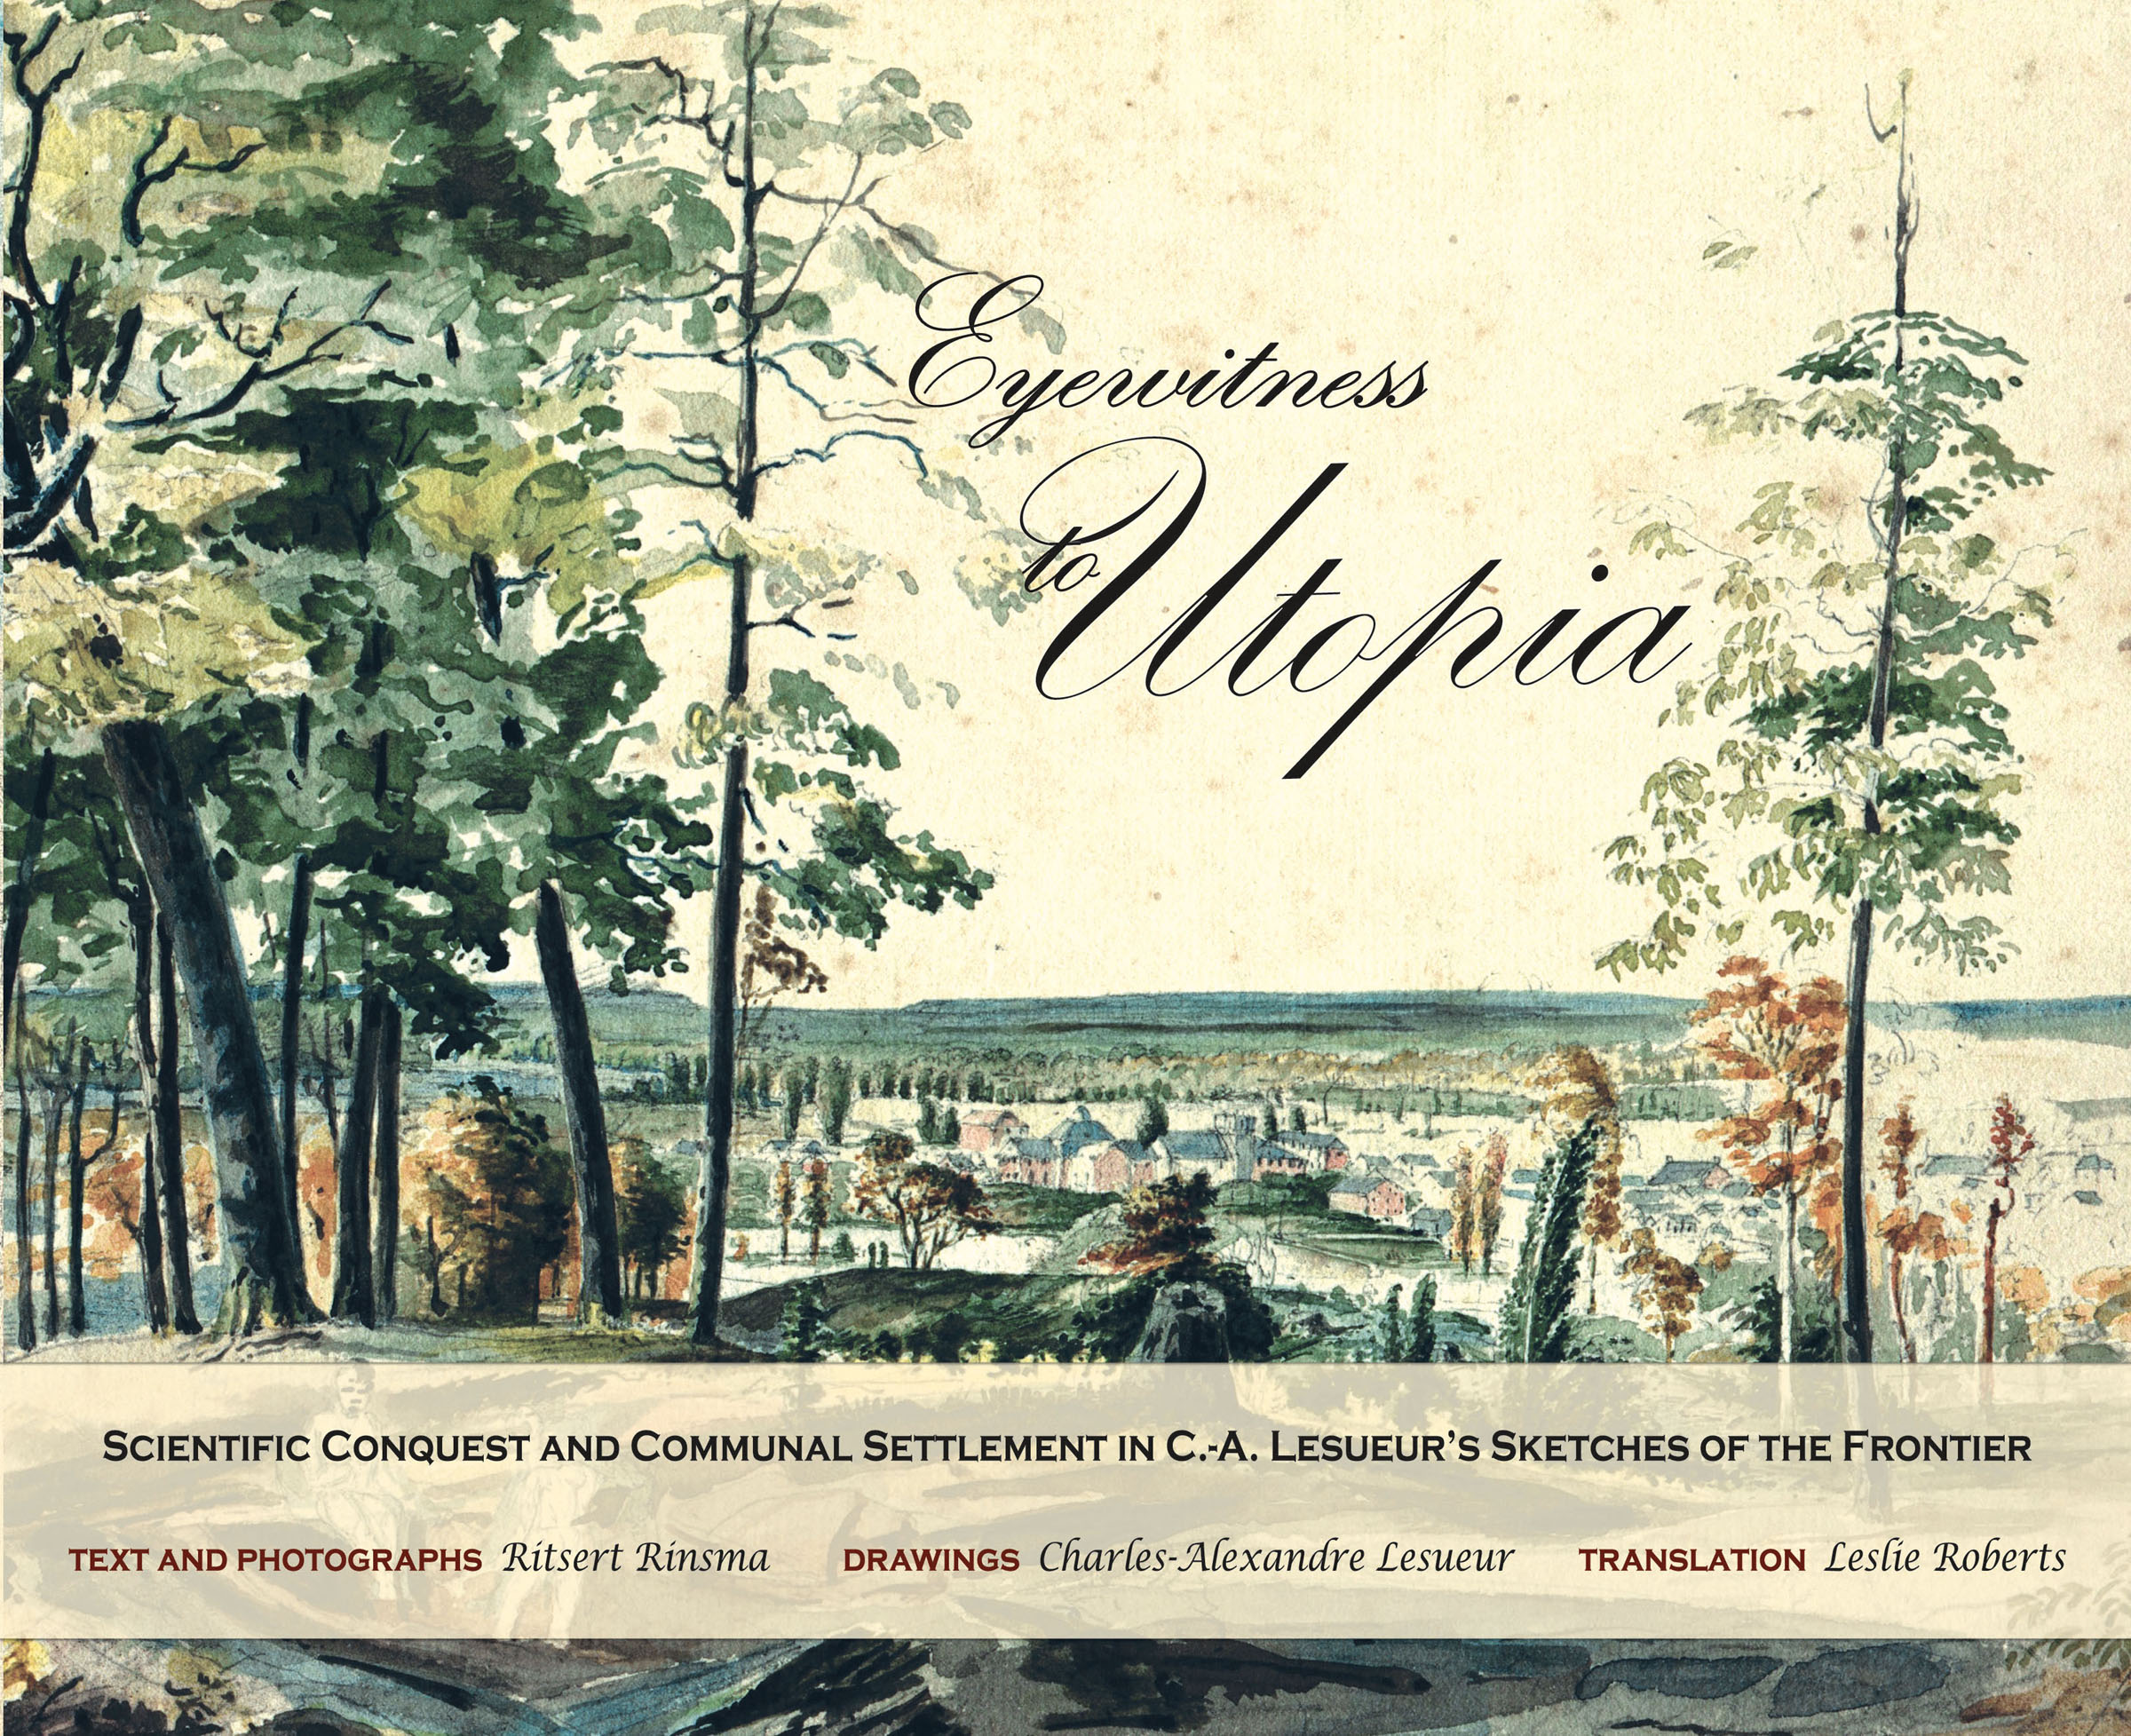 Cover of the book Eyewitness to Utopia by Bauke Ritsert Rinsma and Charles-Alexandre Lesueur